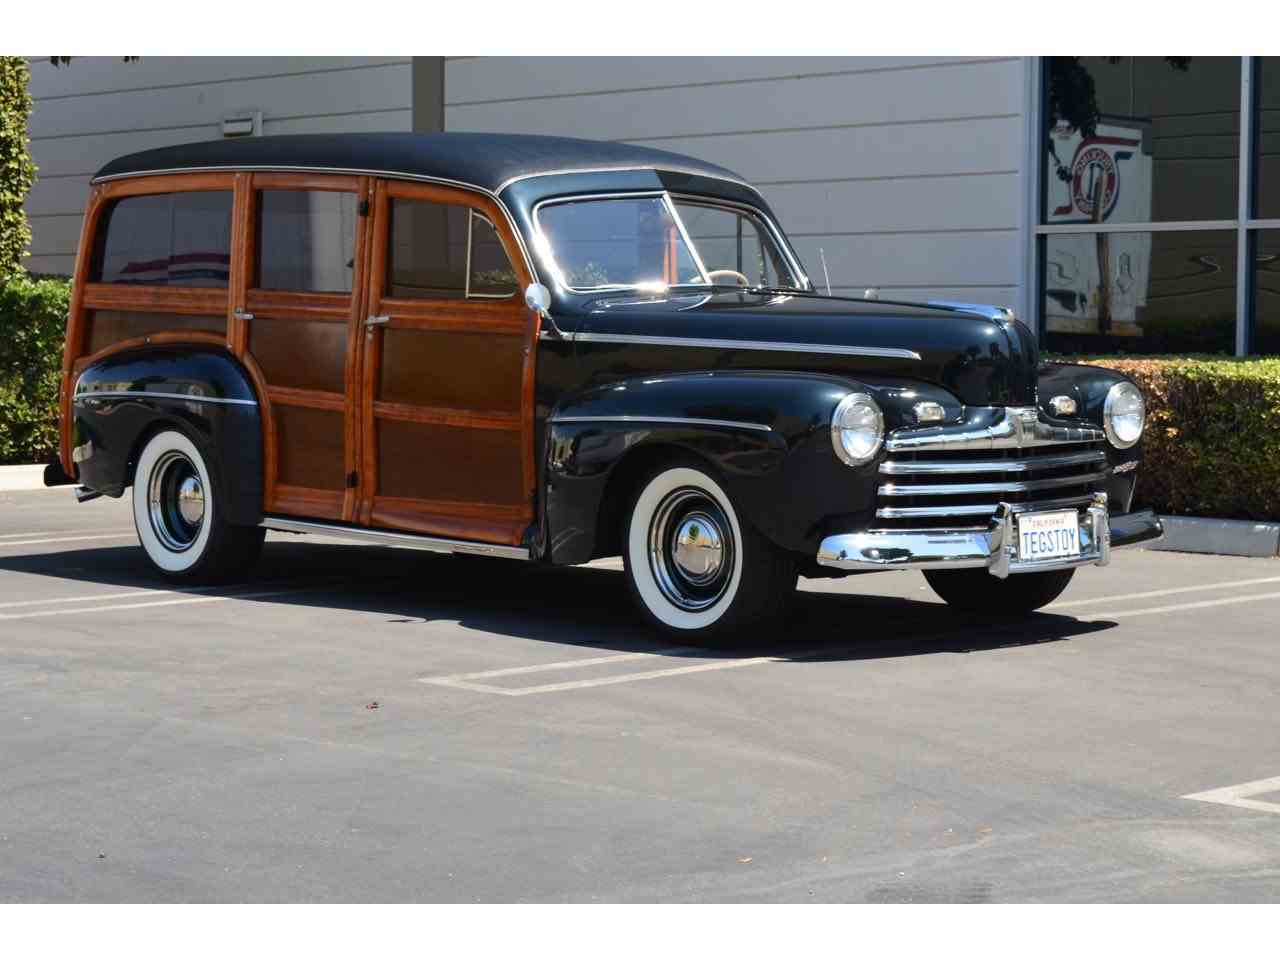 Large Picture of '46 Ford Station Wagon Woody located in Oxnard California - $69,500.00 Offered by Spoke Motors - M5H5